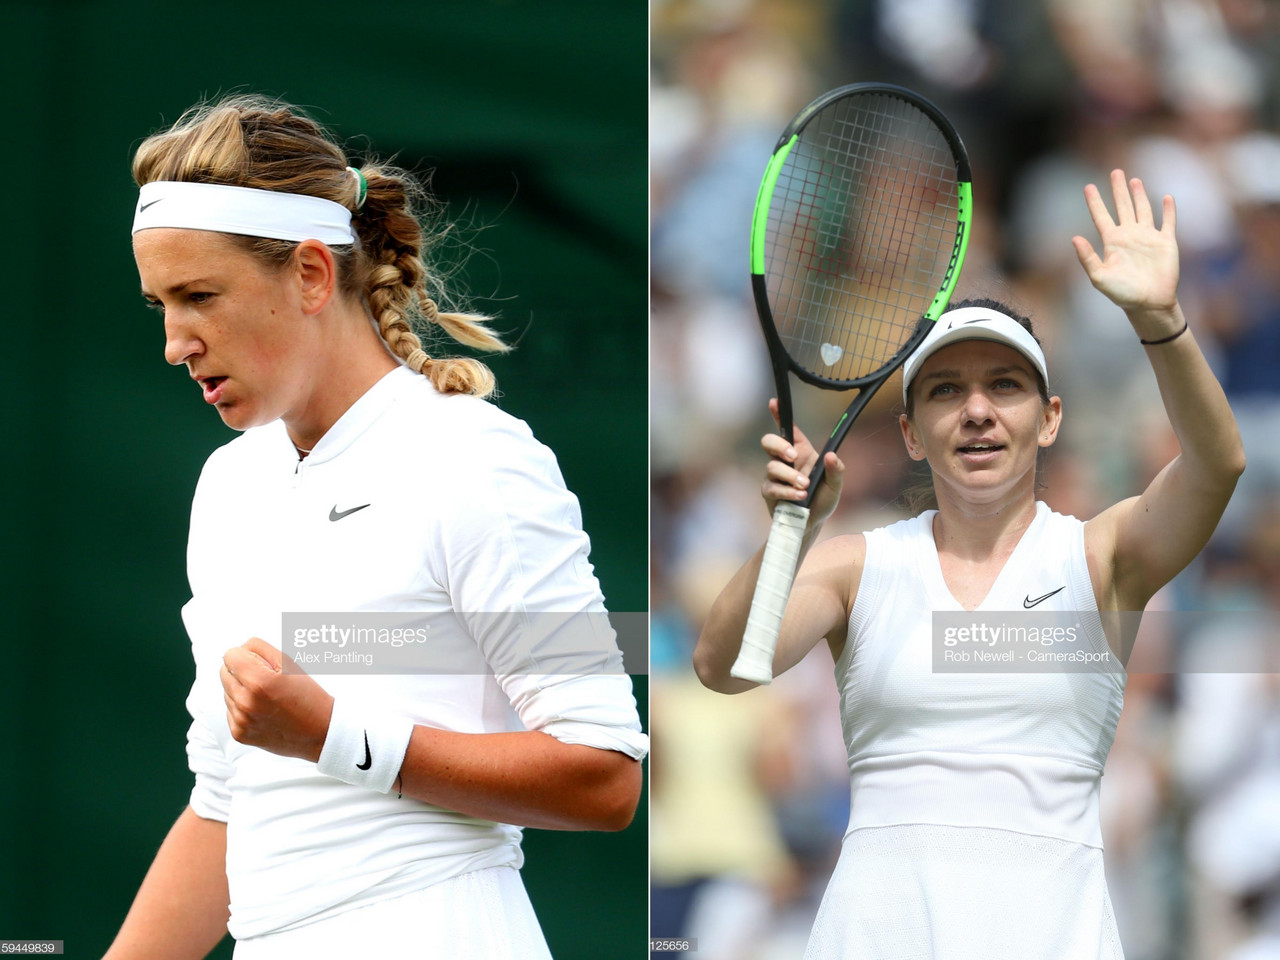 Chilled Halep catches fire to dispatch Azarenka at Wimbledon